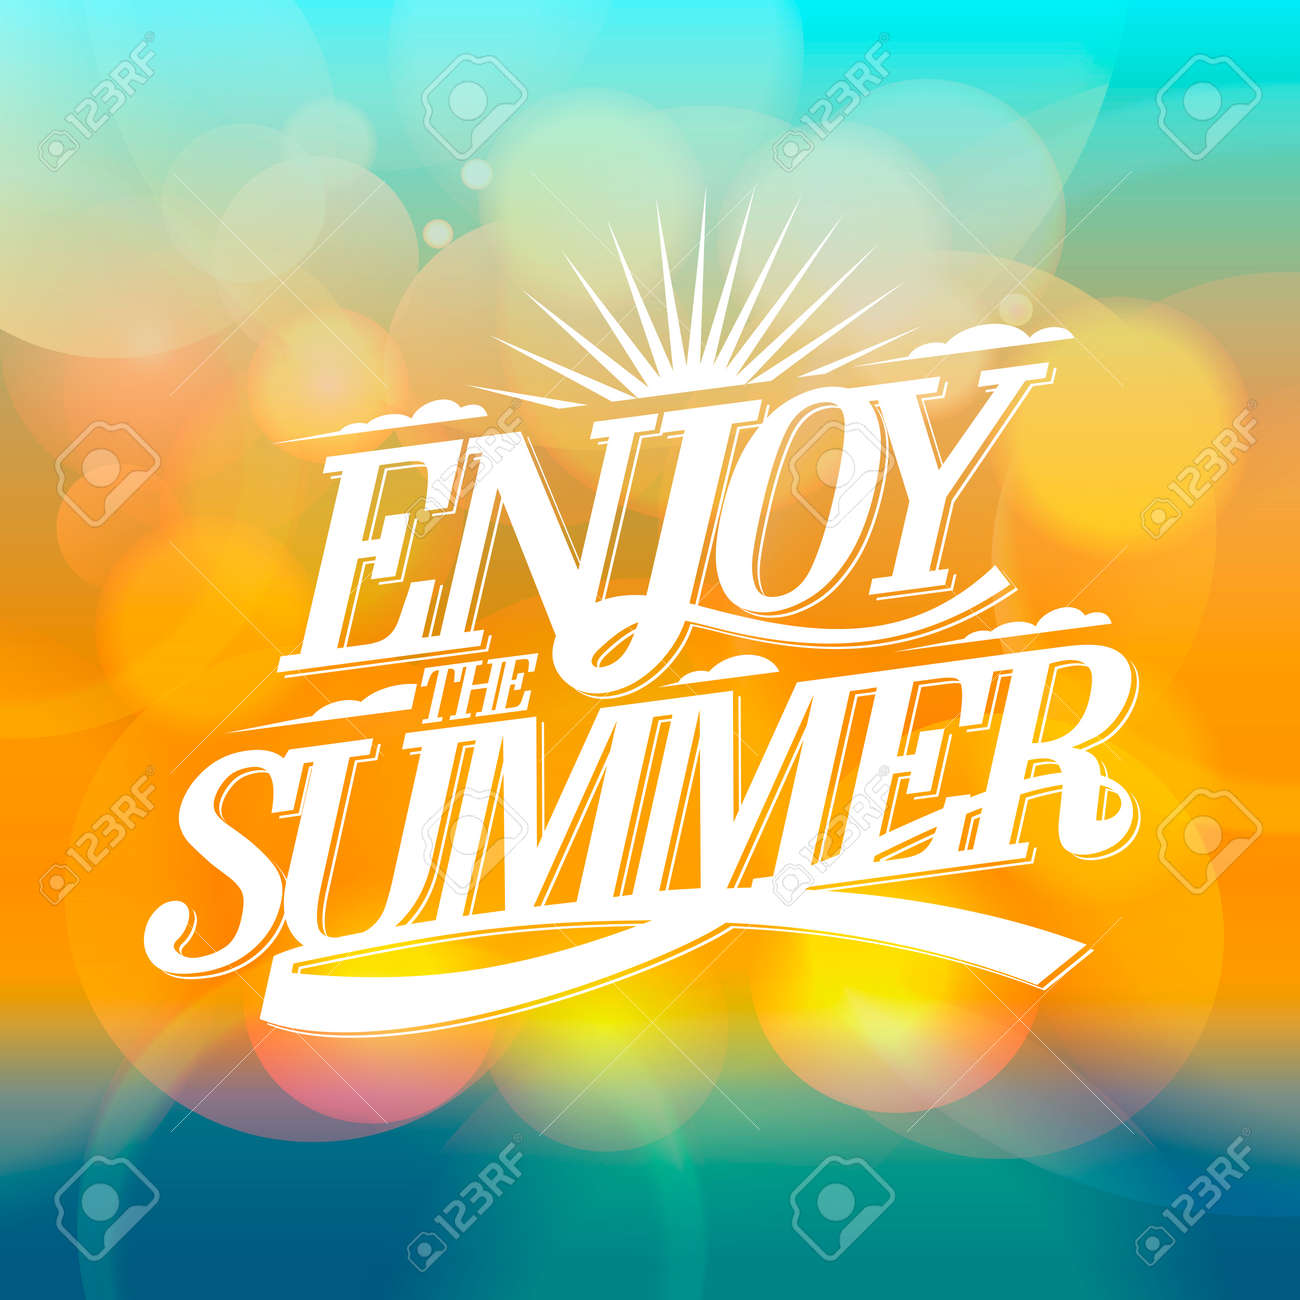 Enjoy The Summer Bright Poster On A Bokeh Backdrop Happy Vacation Card Stock Photo